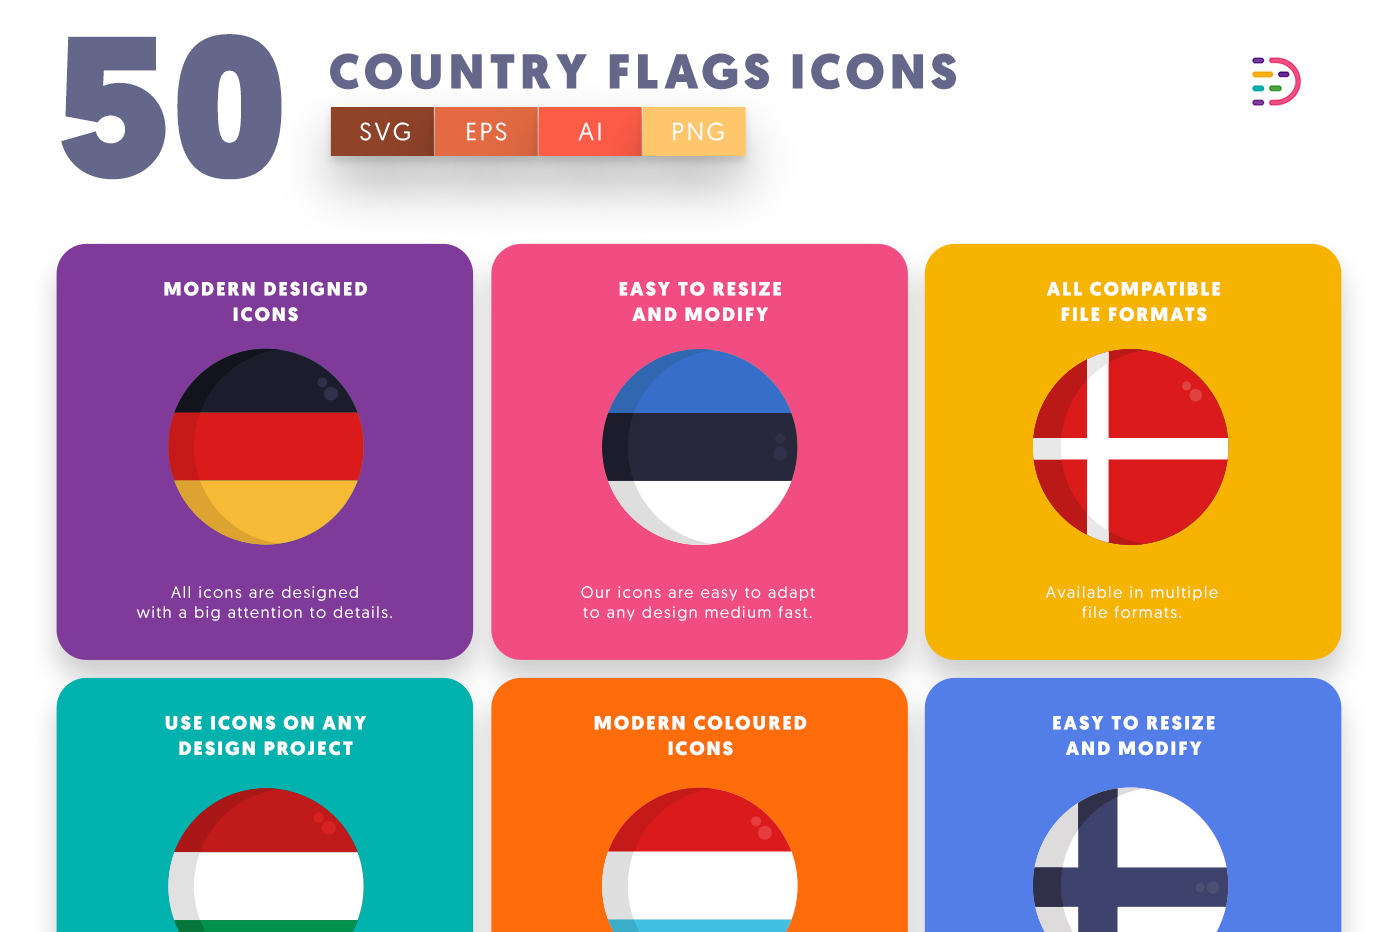 50 Country Flags Icons with colored backgrounds